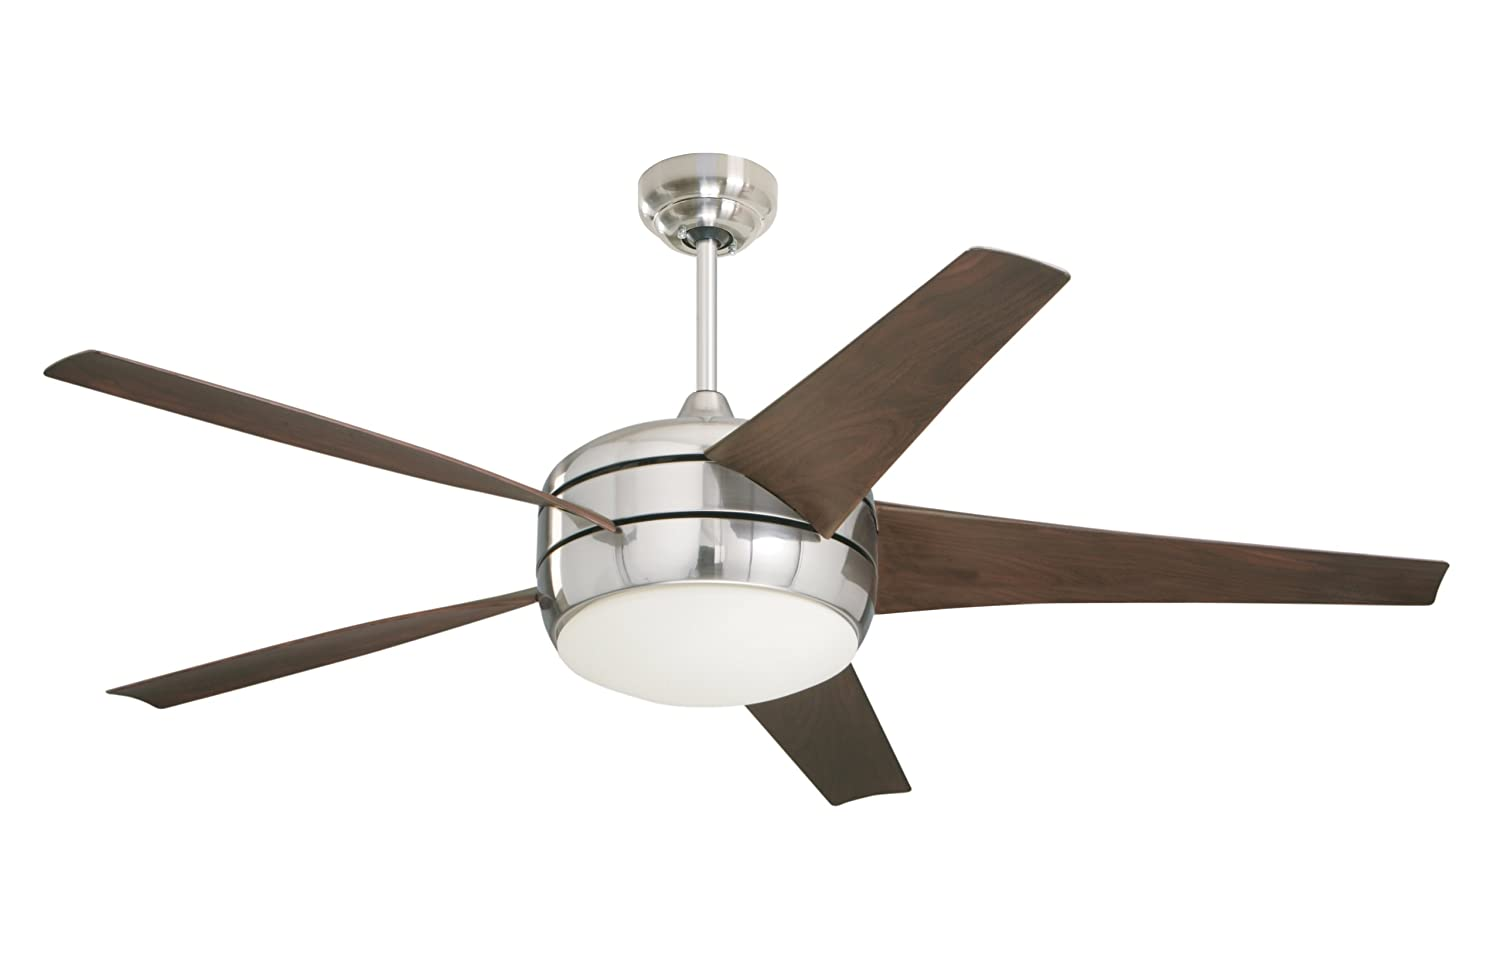 Emerson Midway Eco Cf955b Highly Efficient Ceiling Fan